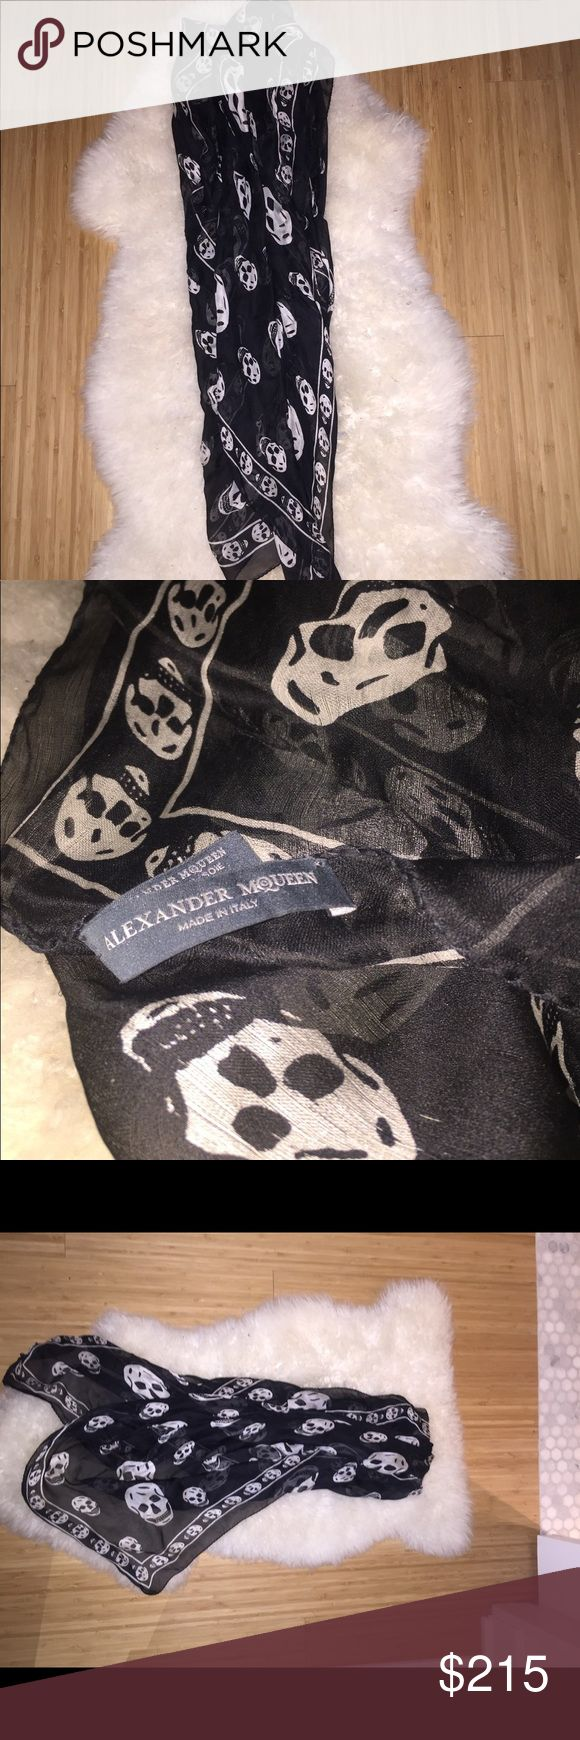 Alexander McQueen Skull Scarf 100% Authentic Alexander McQueen black scarf with white skulls. Gently used, pre-owned. Alexander McQueen Accessories Scarves & Wraps